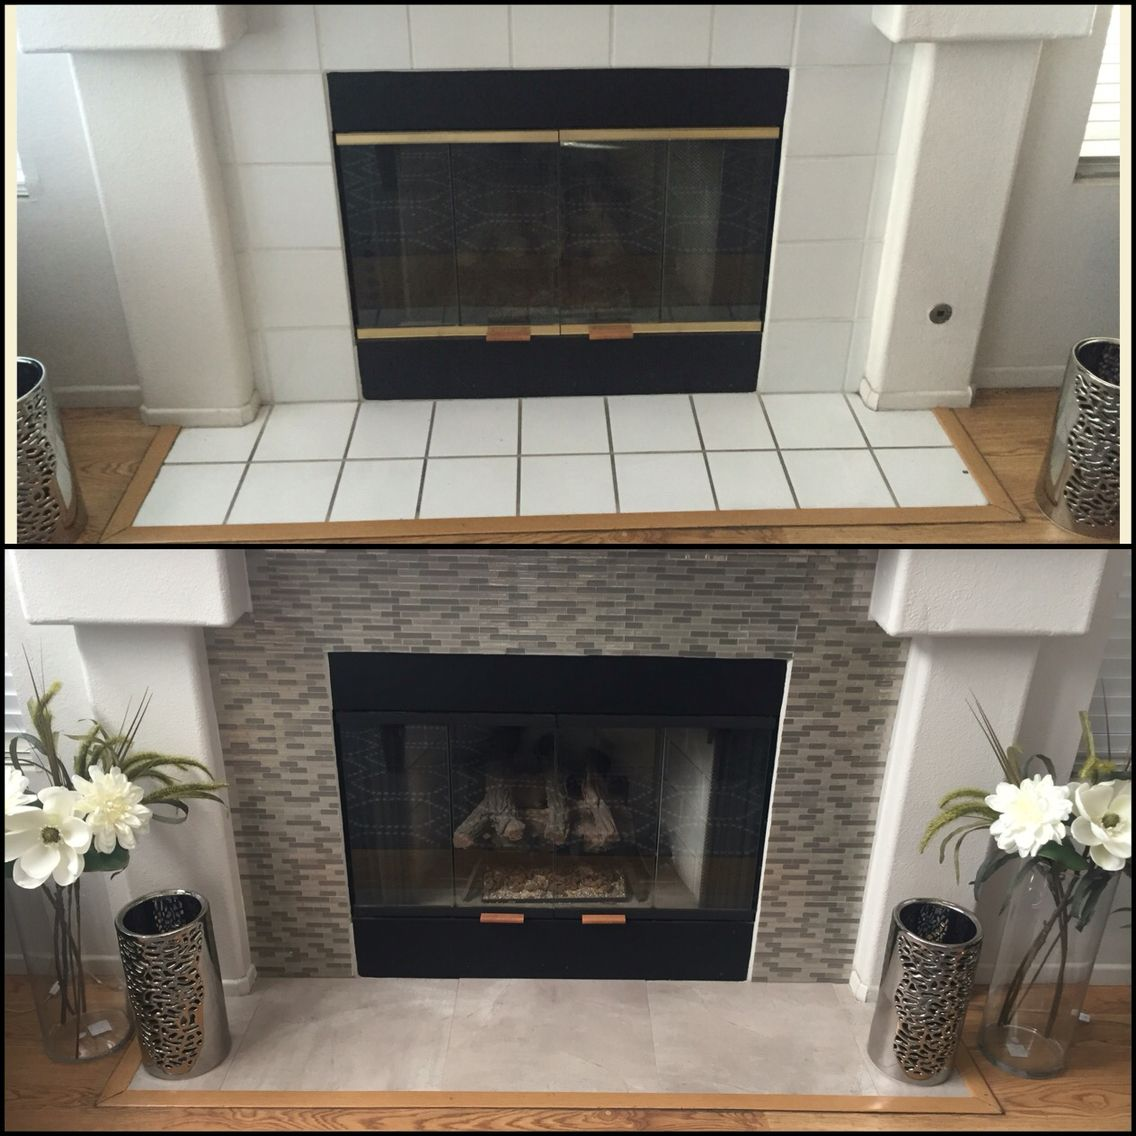 Heat Resistant Paint Fireplace 25 Most Popular Fireplace Tiles Ideas This Year You Need To Know